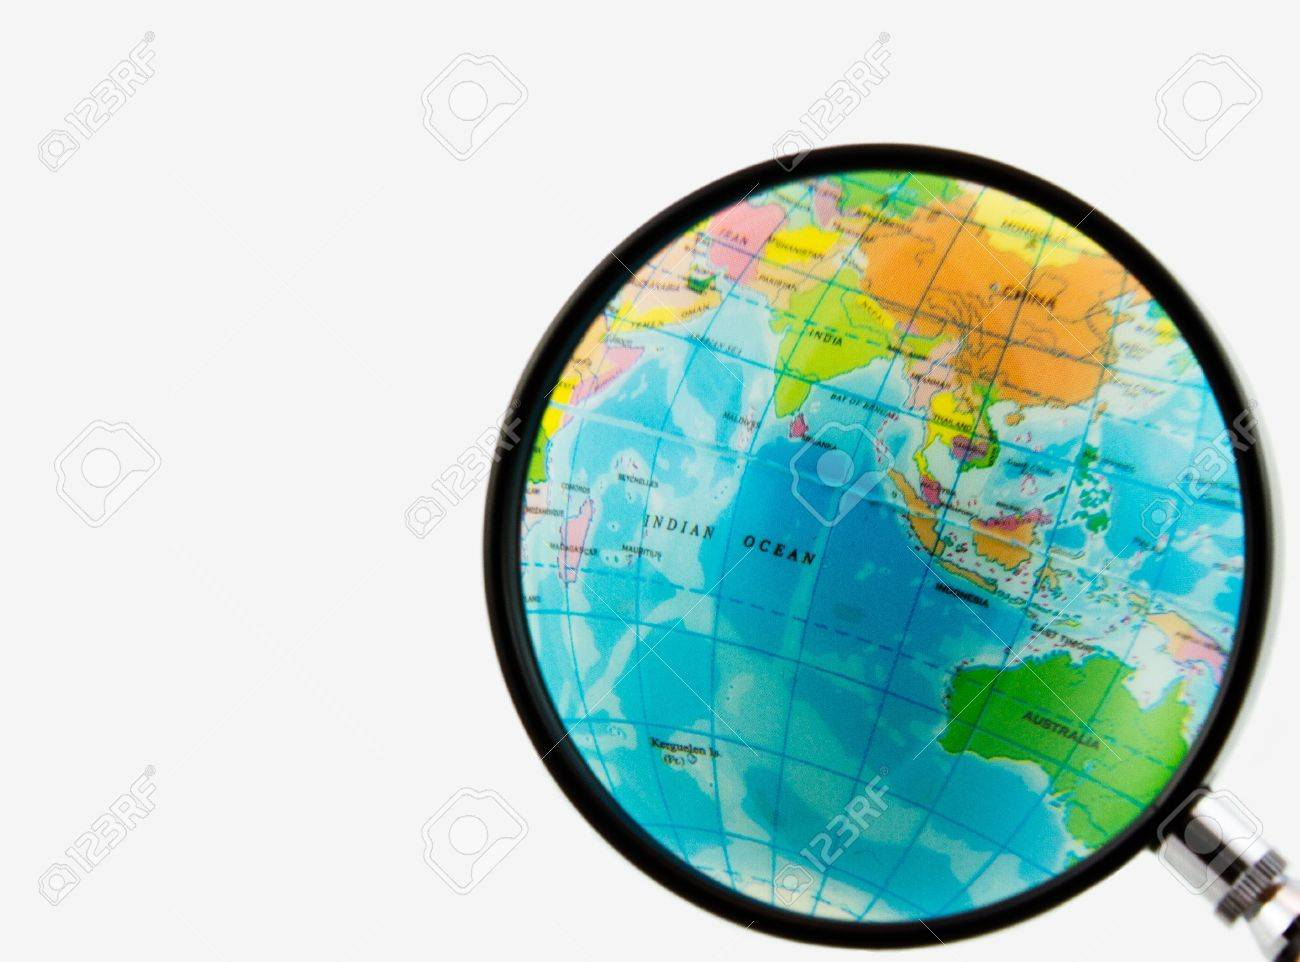 A magnifying glass view of a small colored globe isolated on a white background Stock Photo - 8017270